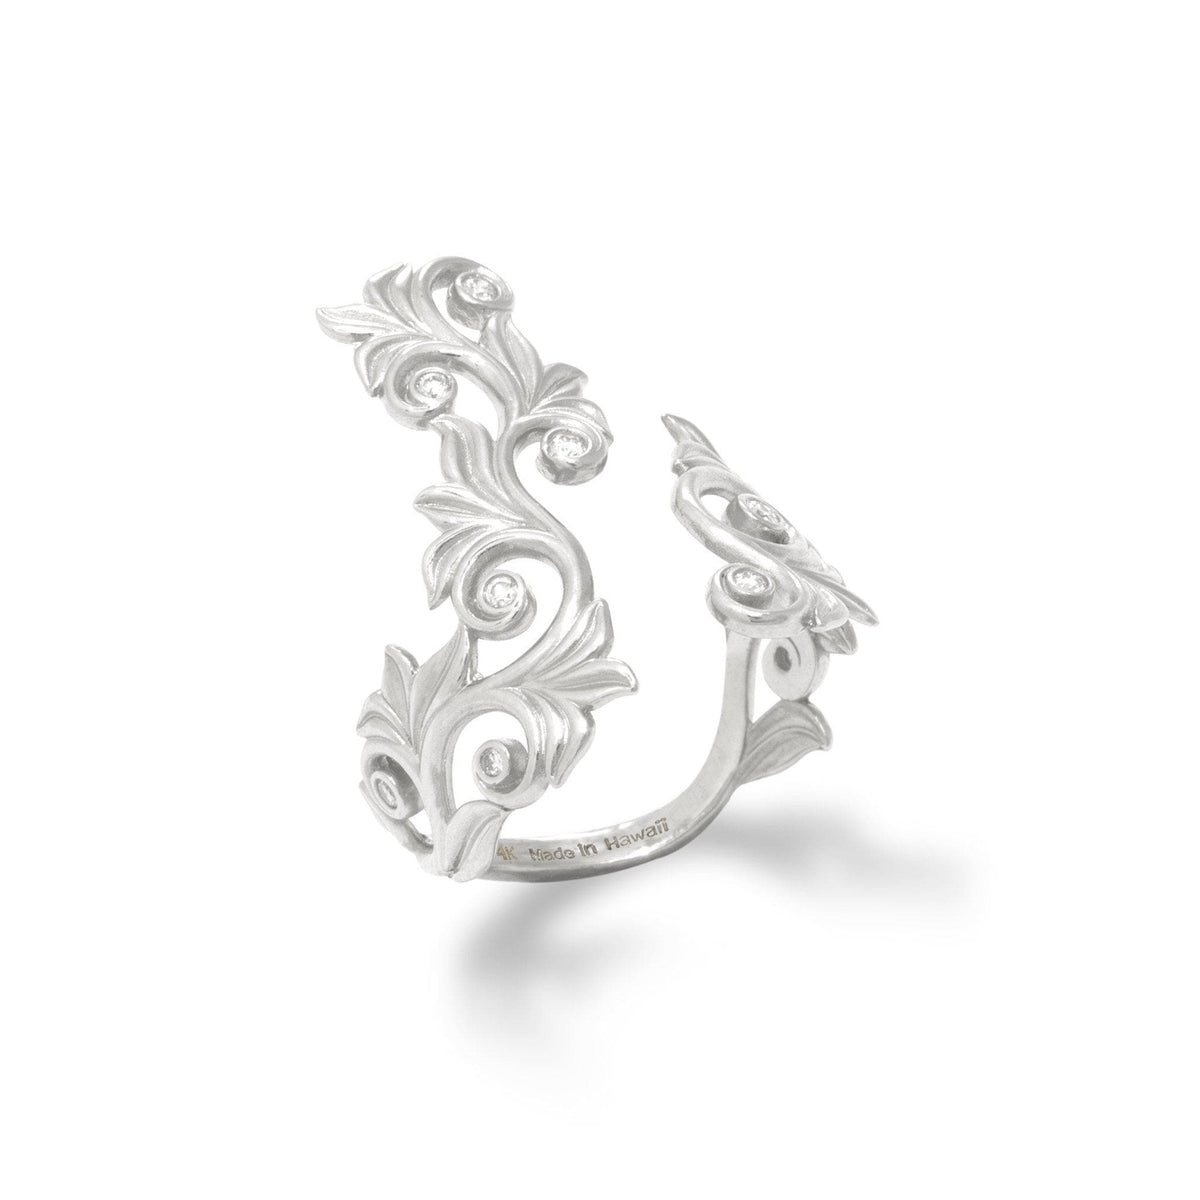 Hawaiian Heirloom Scroll Ring with Diamonds in 14K White Gold - 25mm074-00619